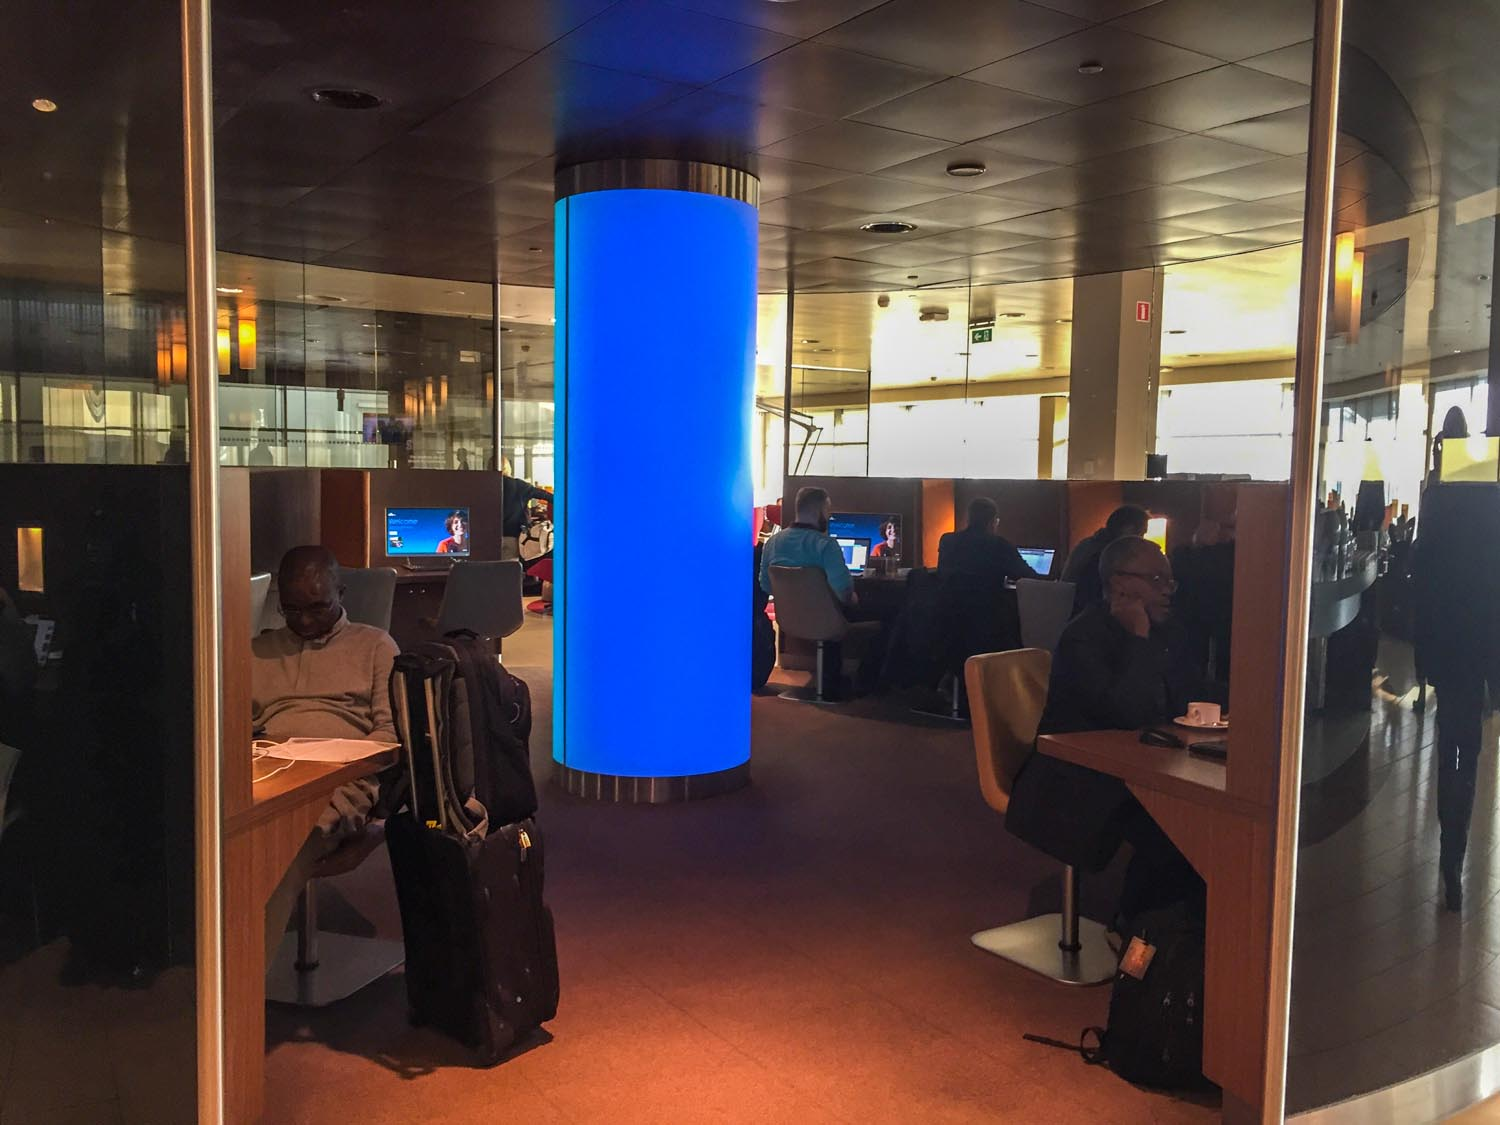 The business area of KLM Crown Lounge 52